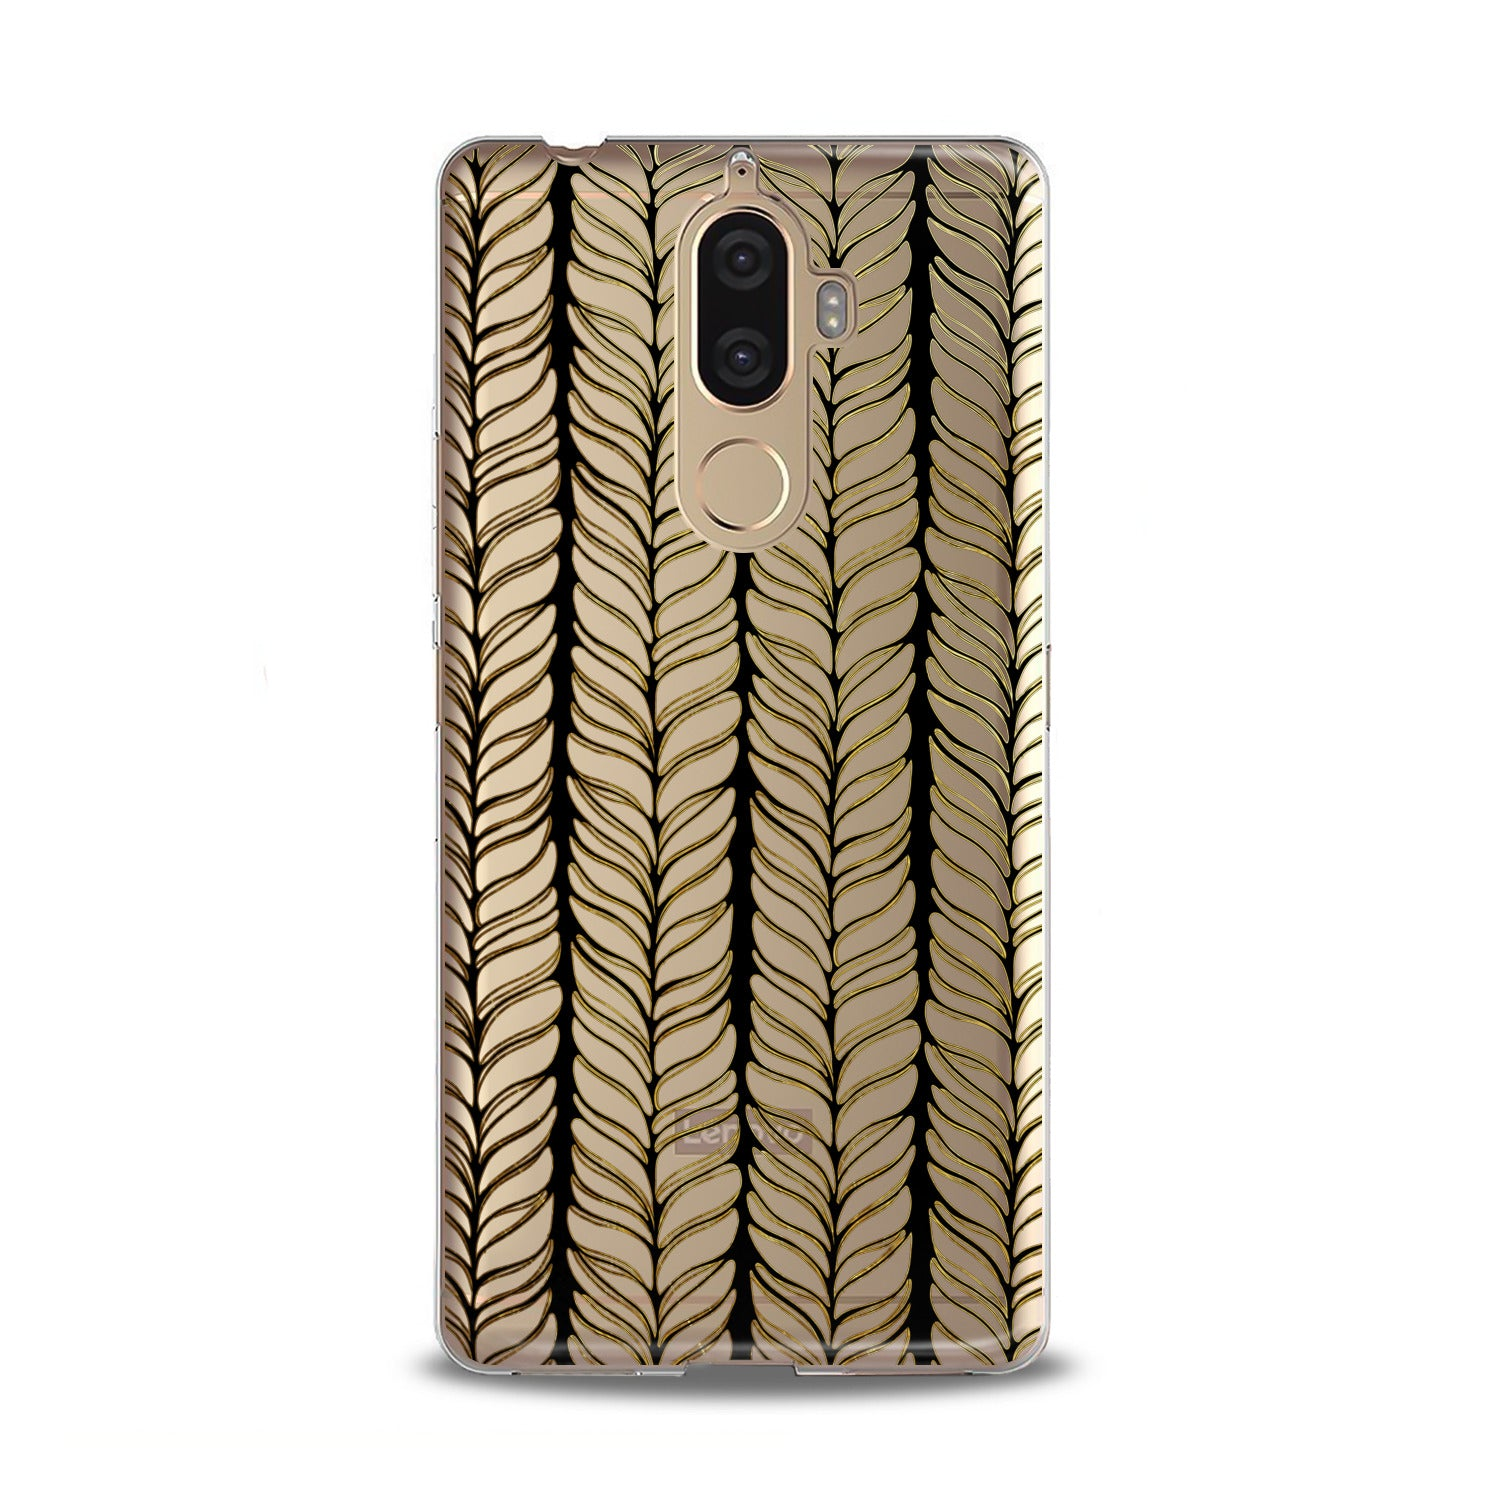 Lex Altern TPU Silicone Lenovo Case Abstract Spikelet